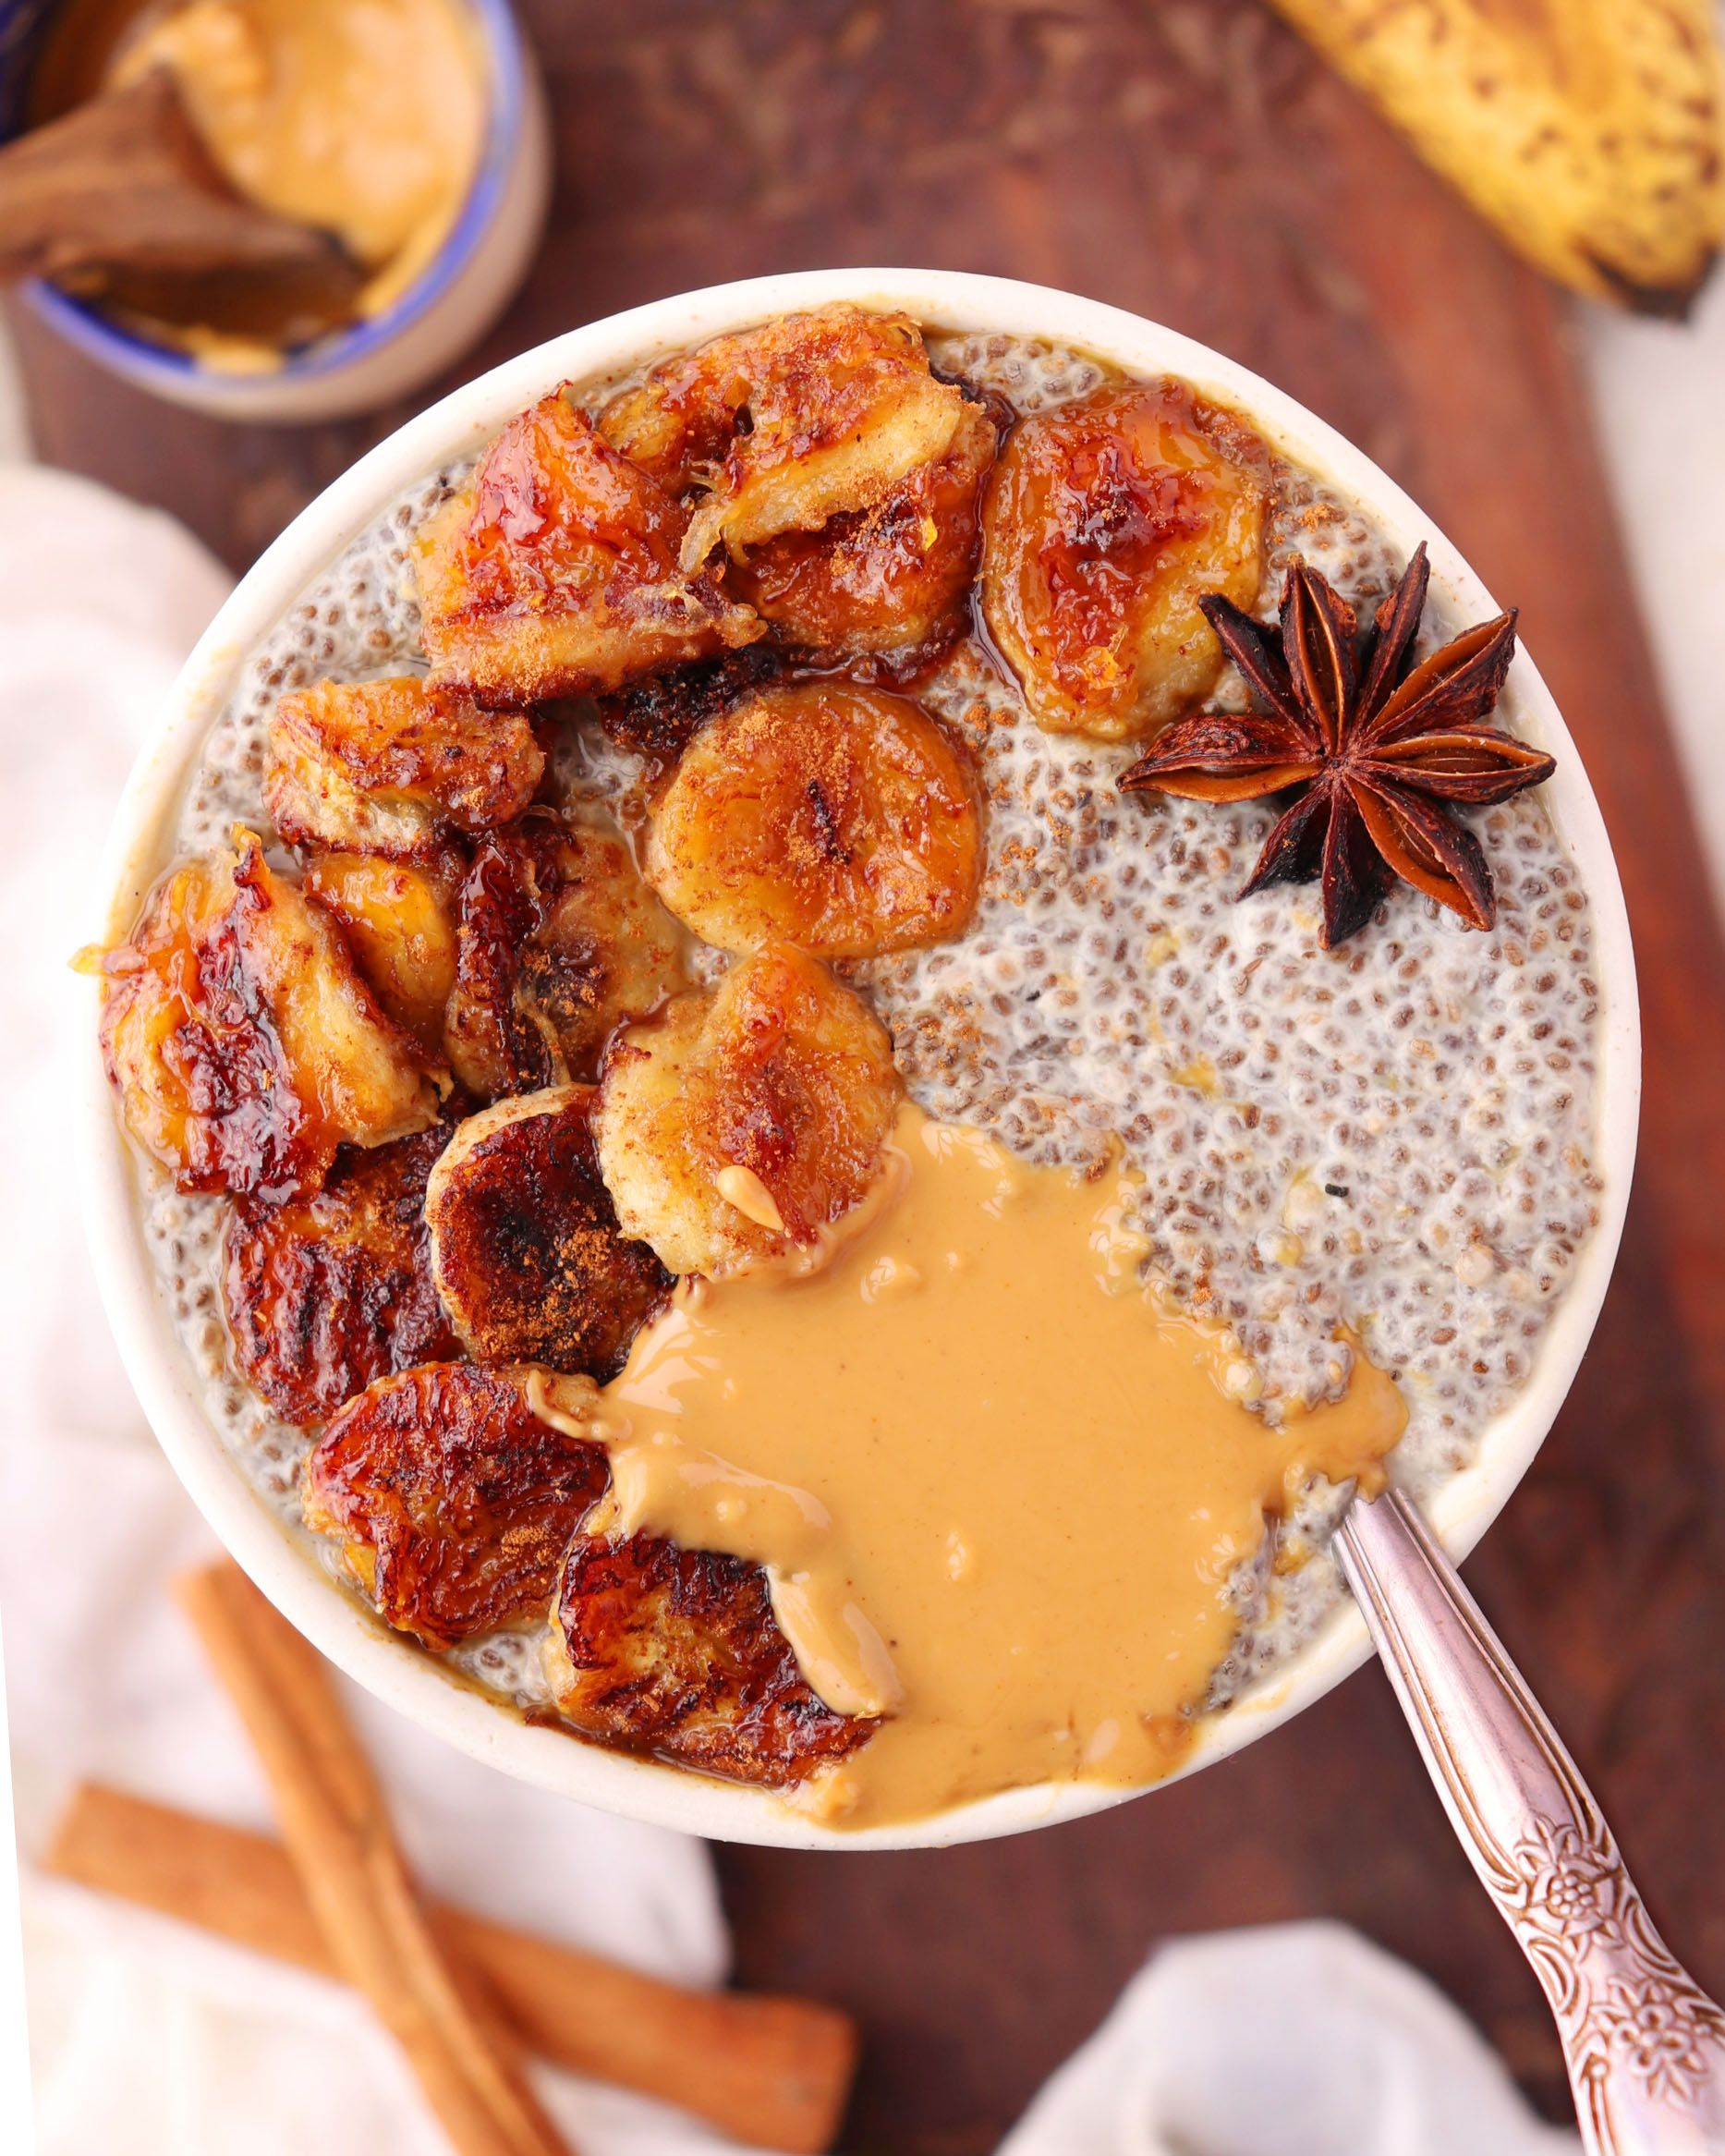 Warm Chia Pudding with Caramelized Bananas - That Delicious Dish - Global recipes with an Indian spin